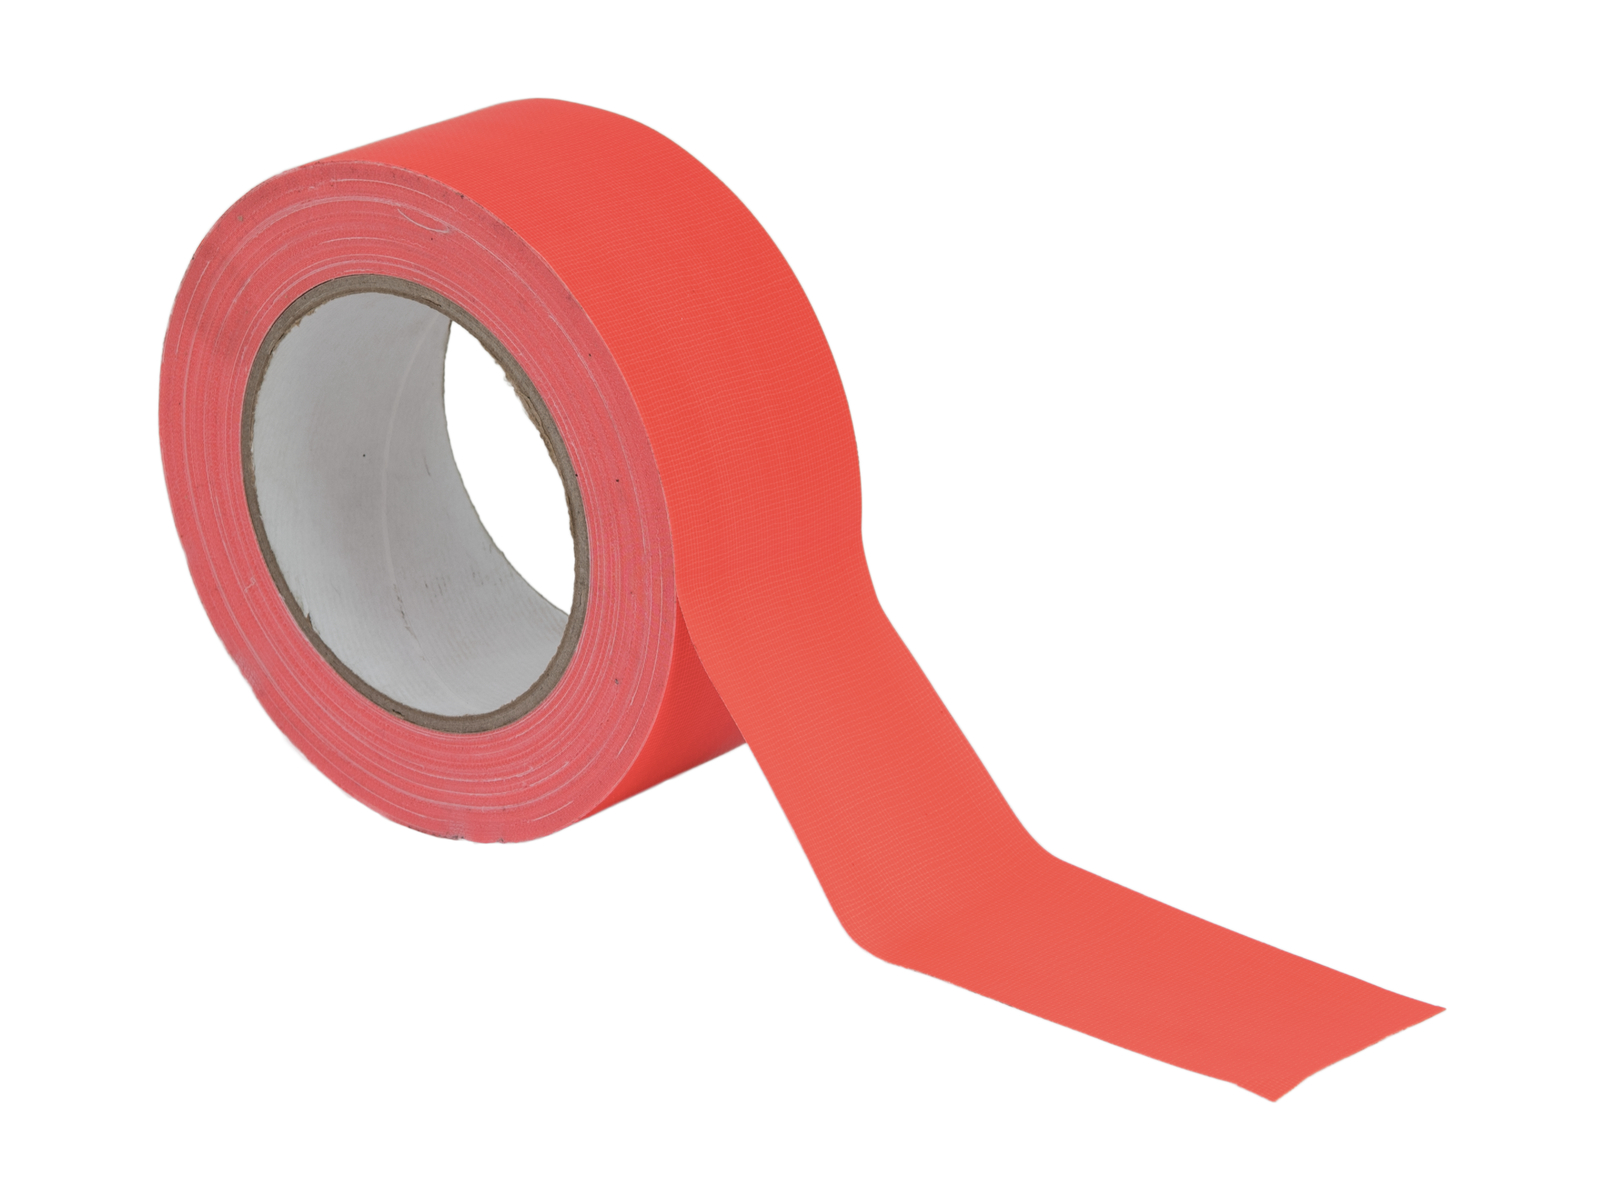 ACCESSORY Gaffa Tape 50mm x 25m neonorange UV-aktiv